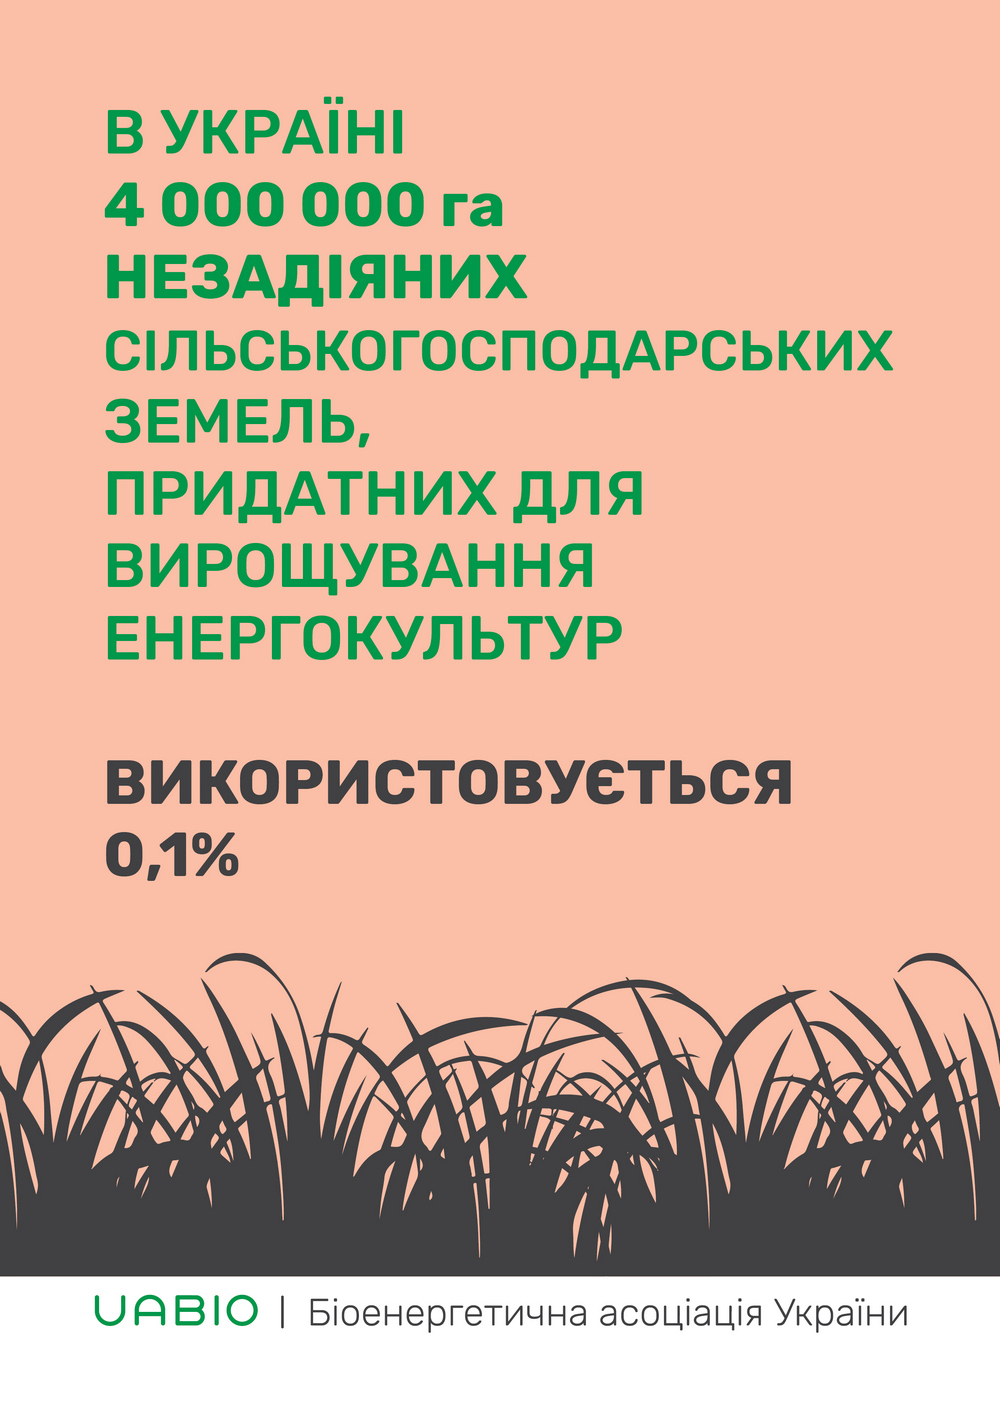 ukrainian-bioenergy-day-campaign-5__.jpg